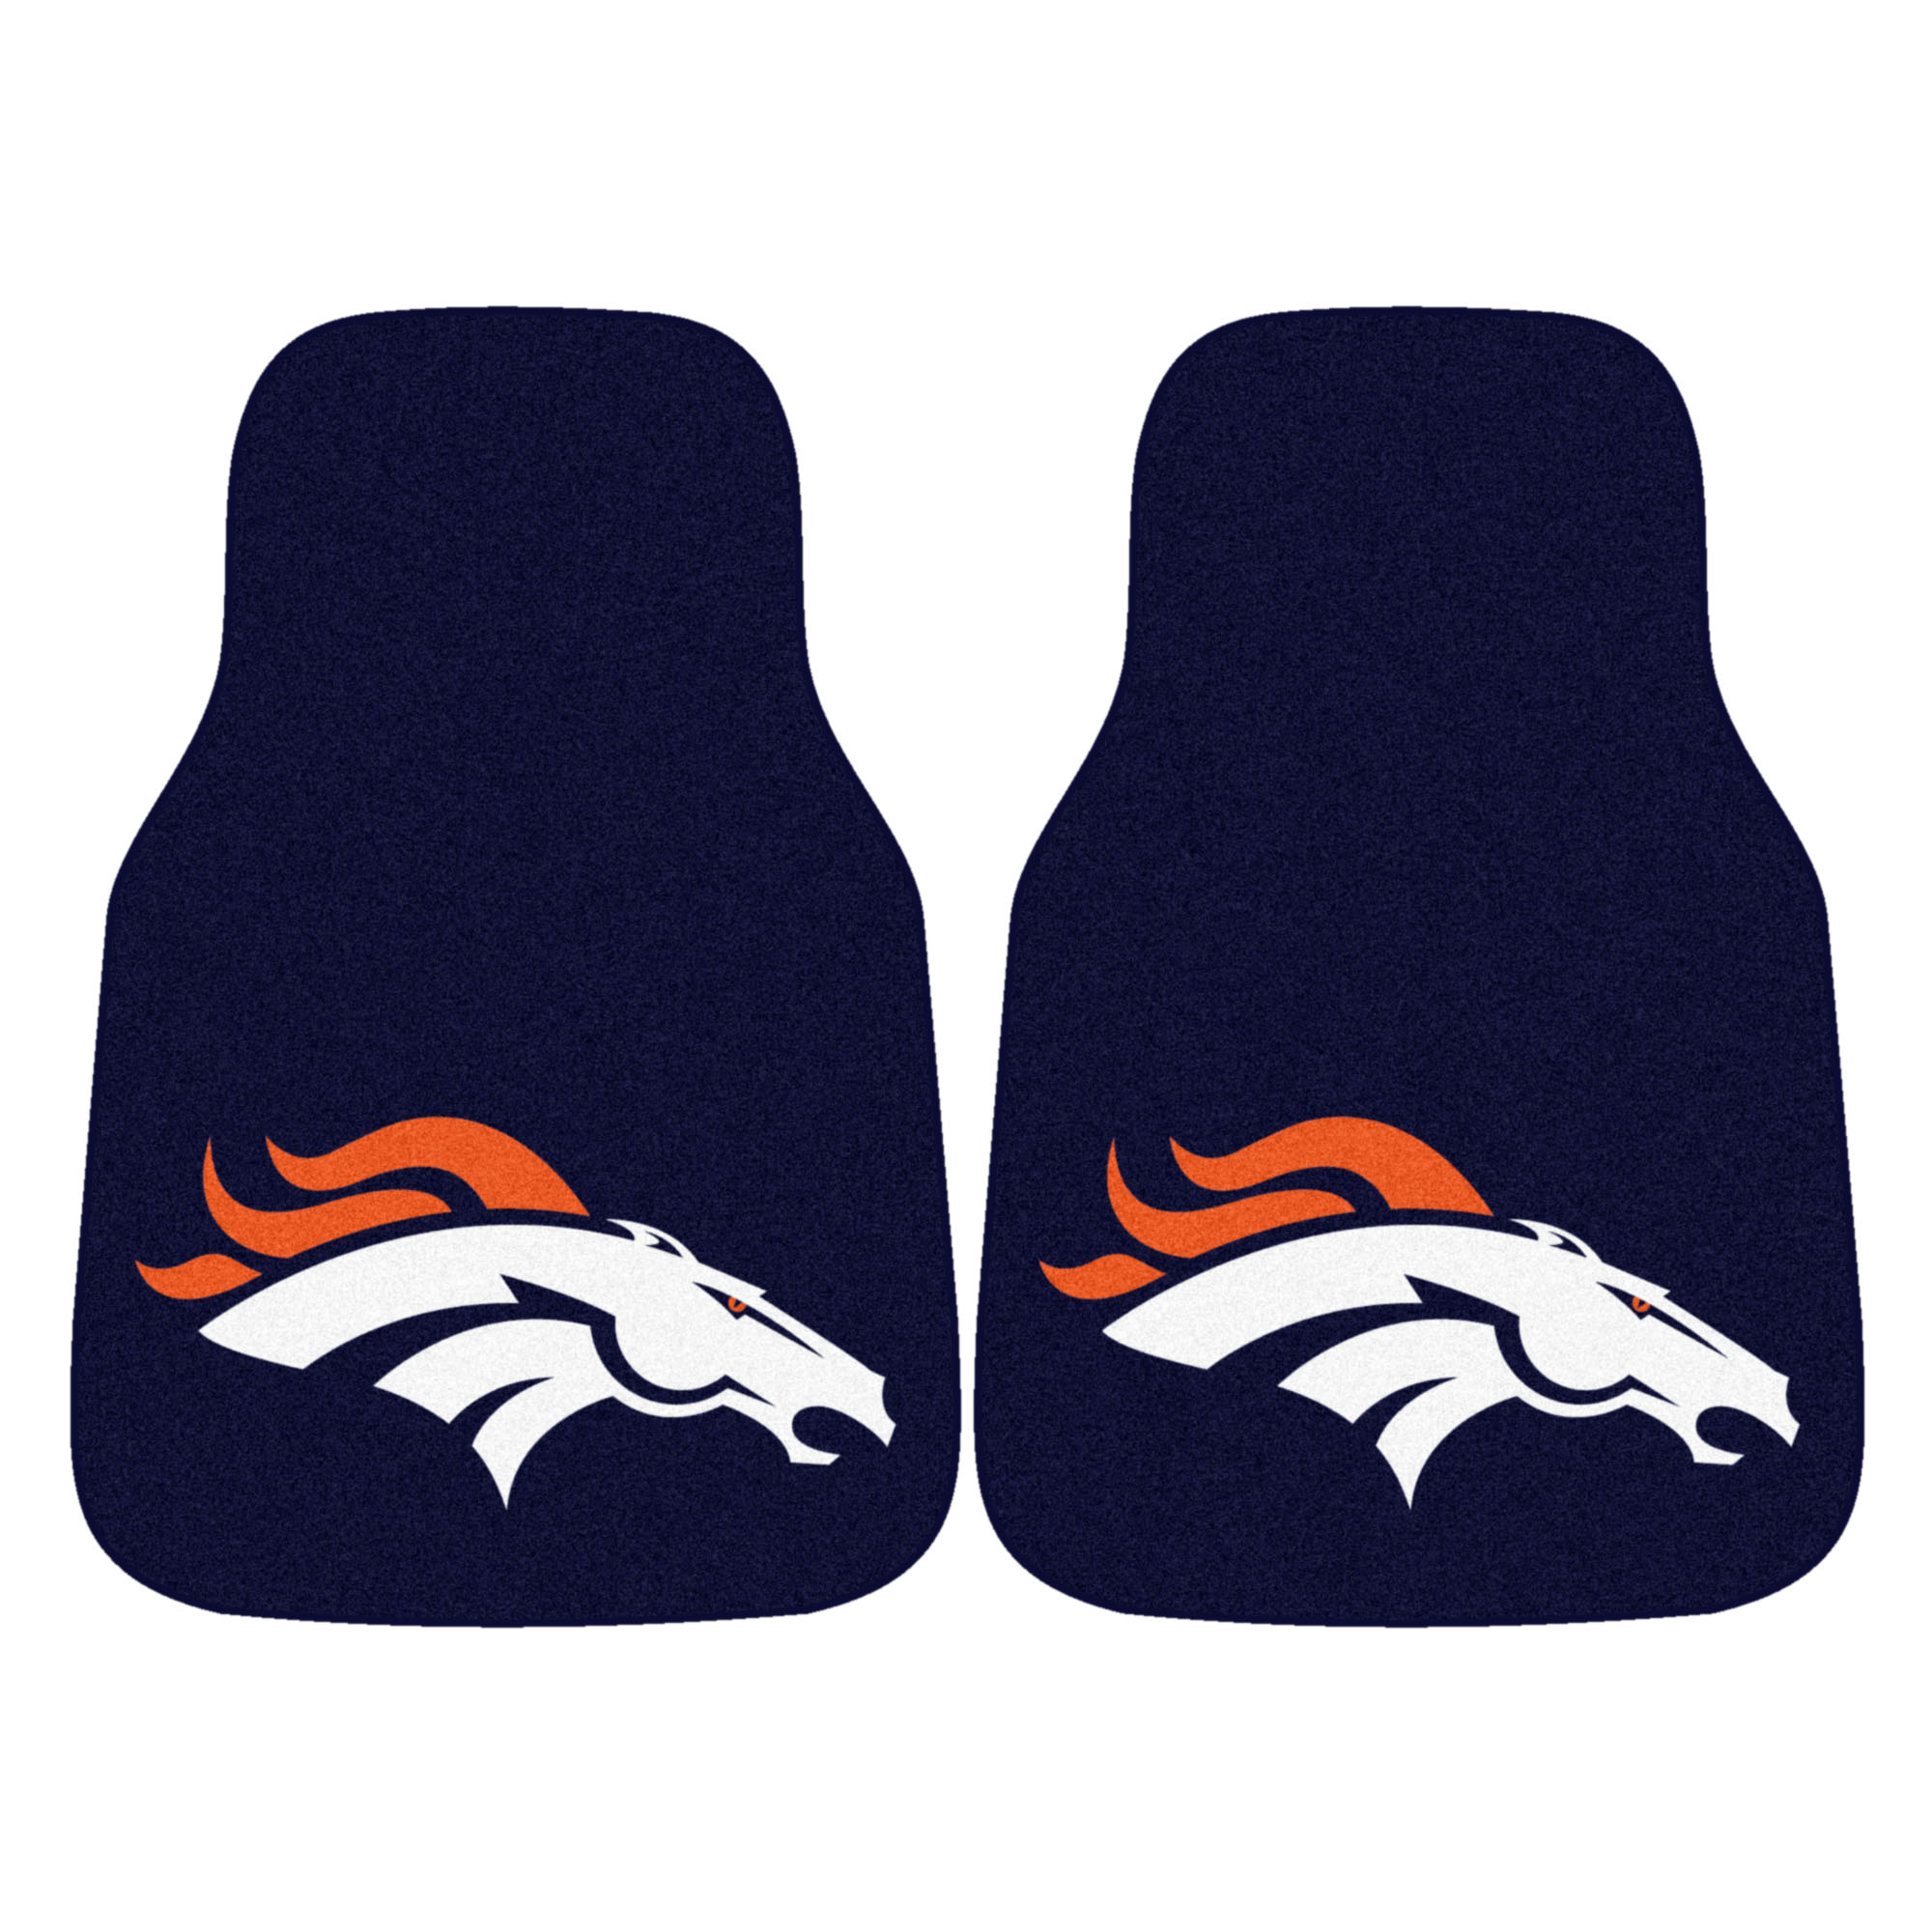 "Denver Broncos 2-pc Carpeted Car Mats 17""x27"""